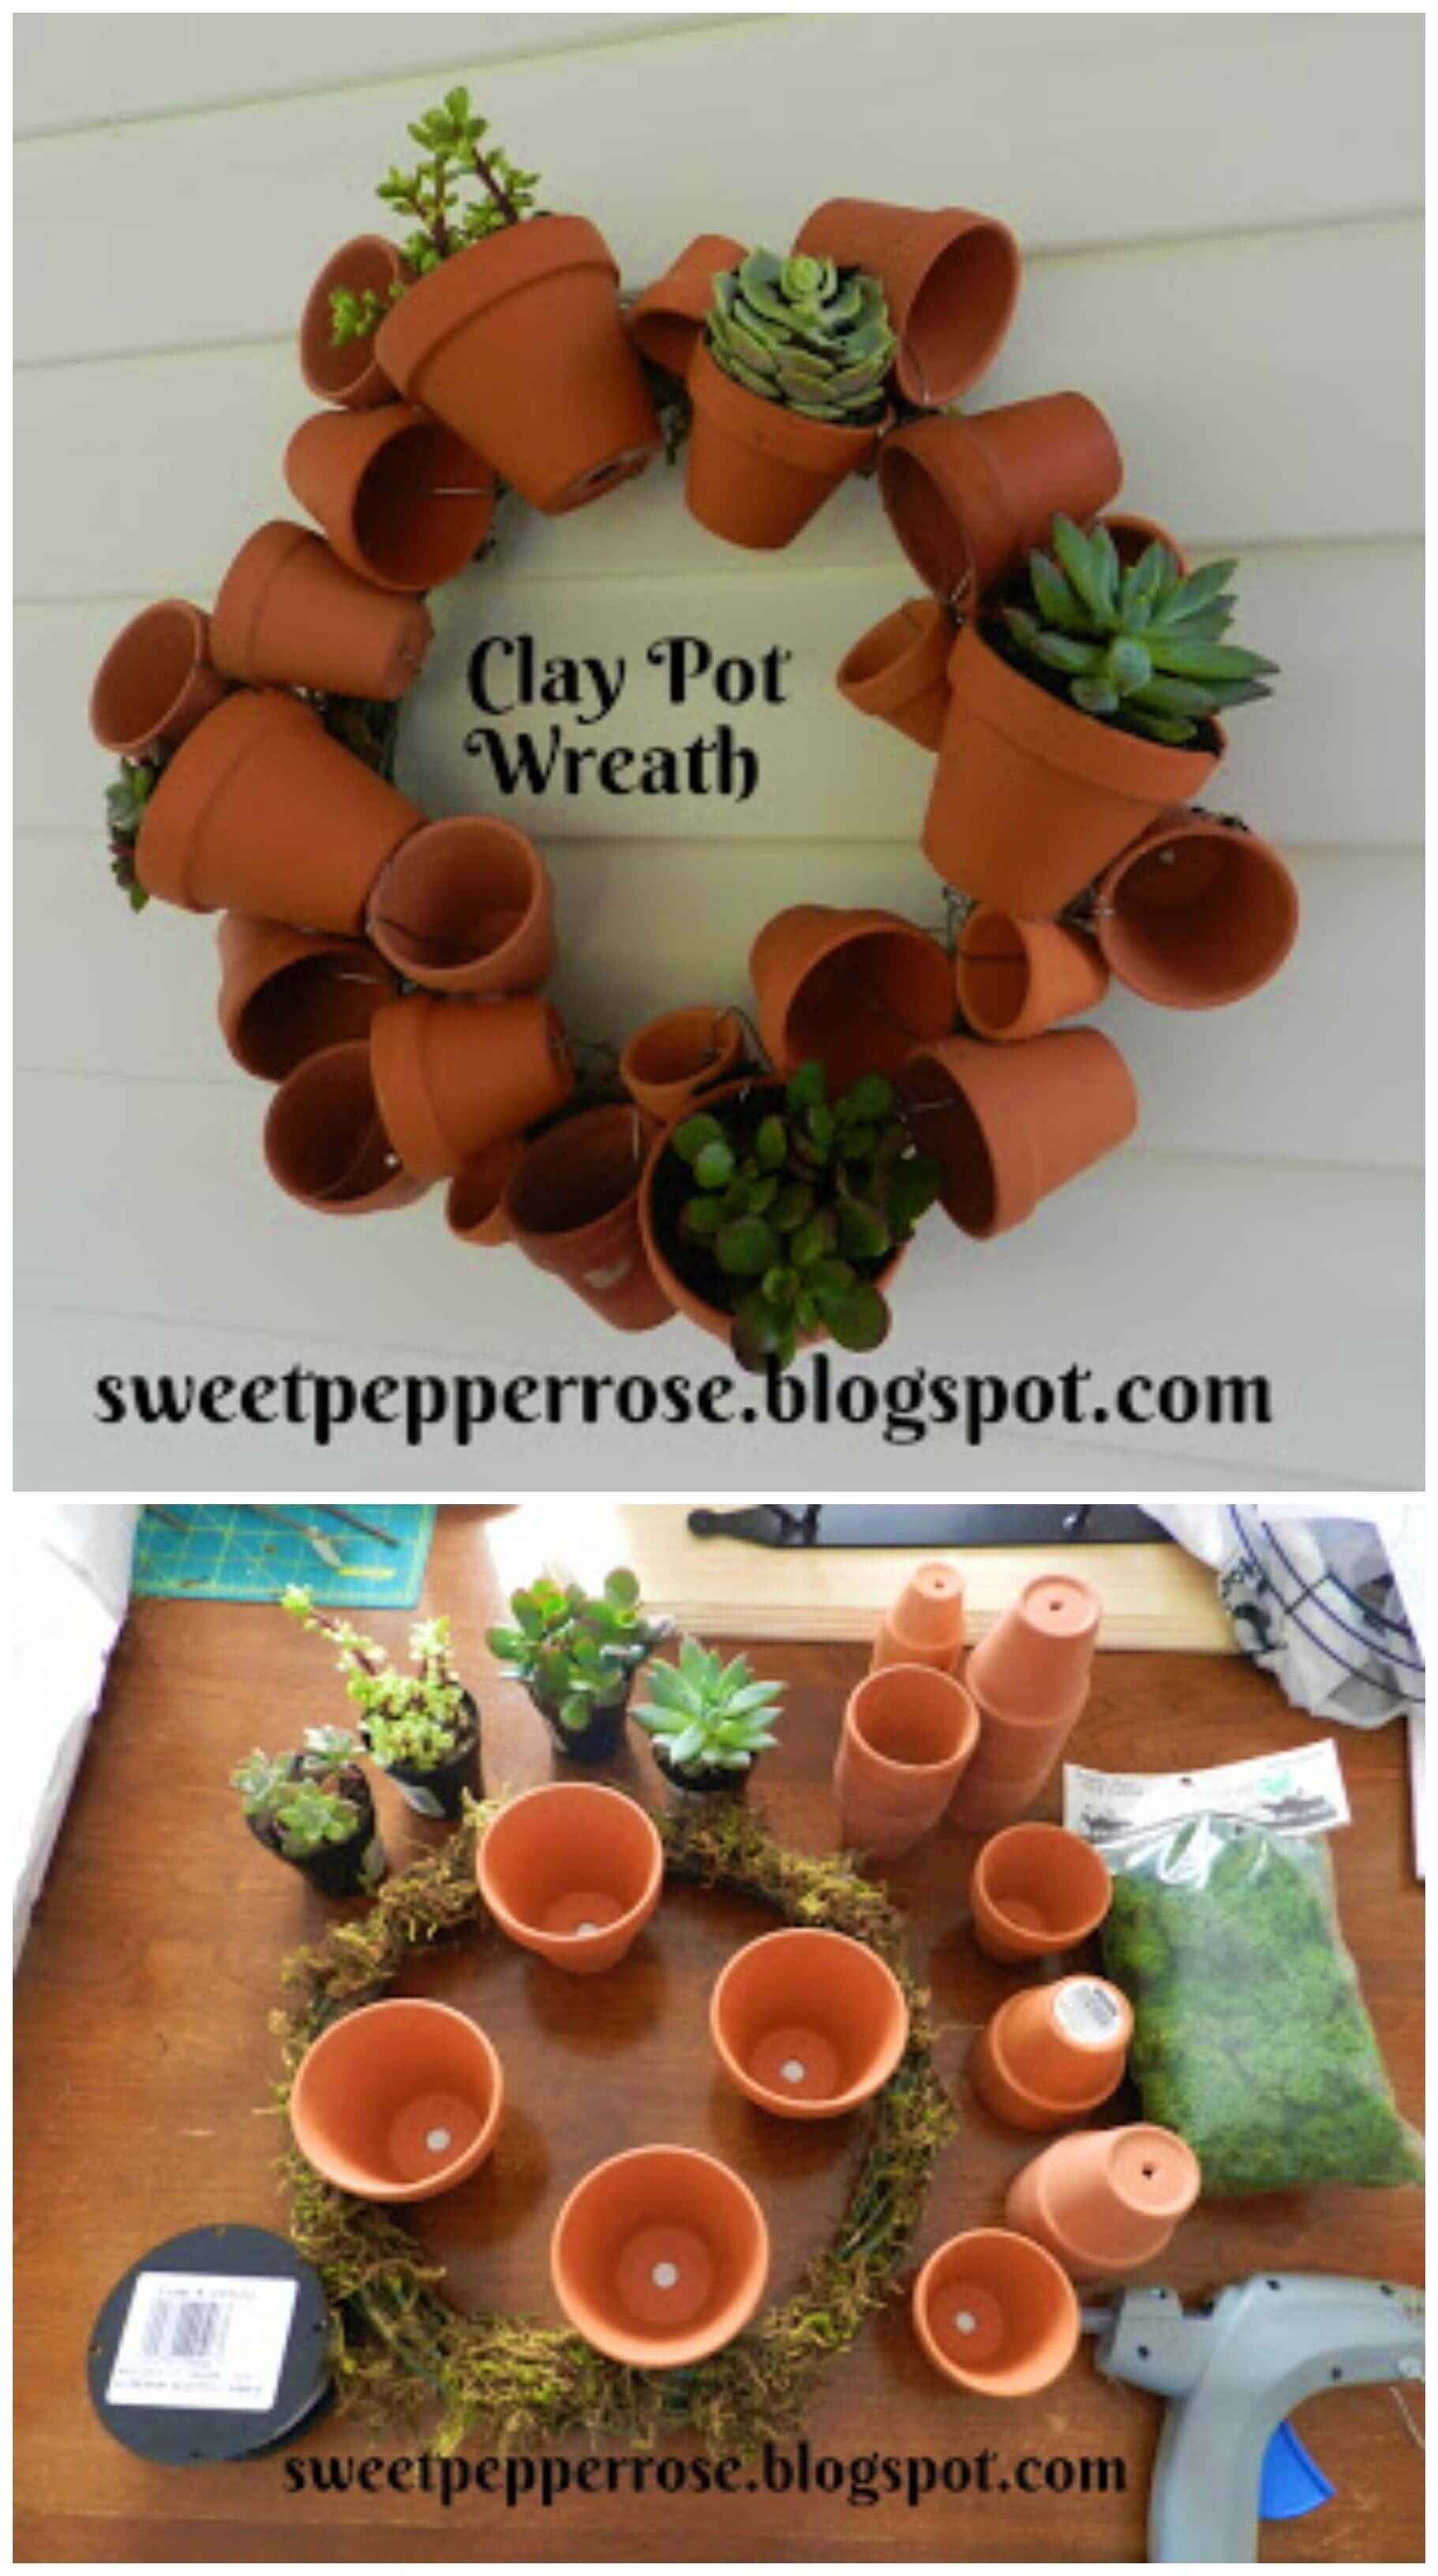 How to Make Clay Pot Wreath